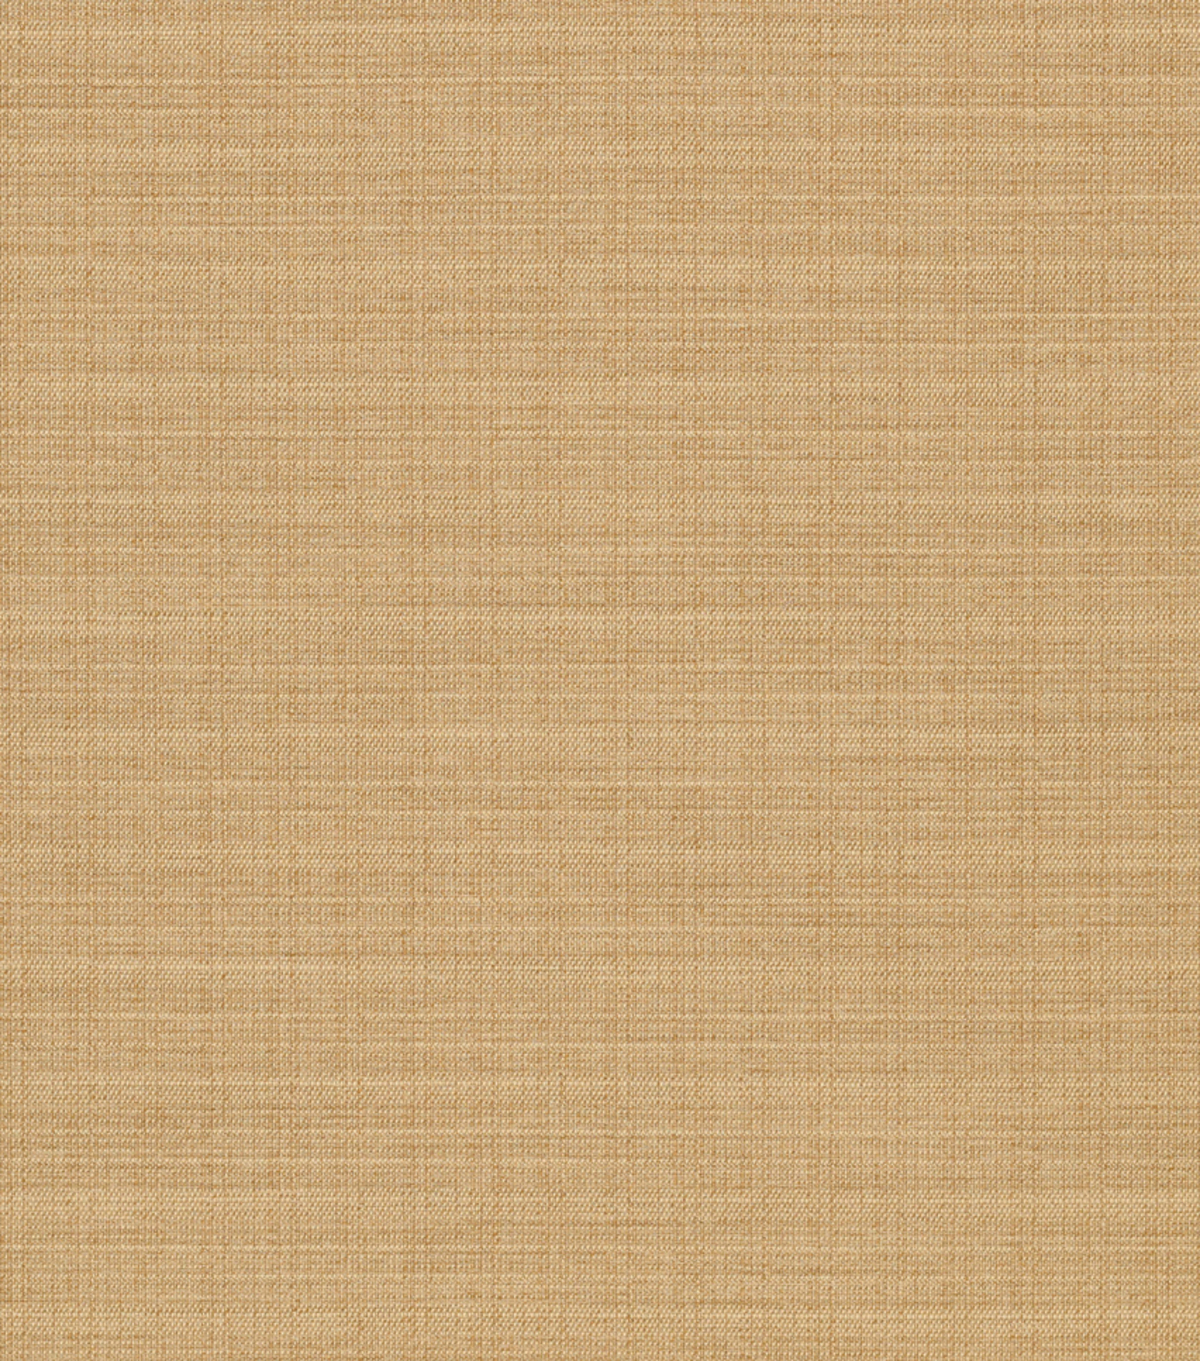 Home Decor 8\u0022x8\u0022 Fabric Swatch-Boca Artichoke